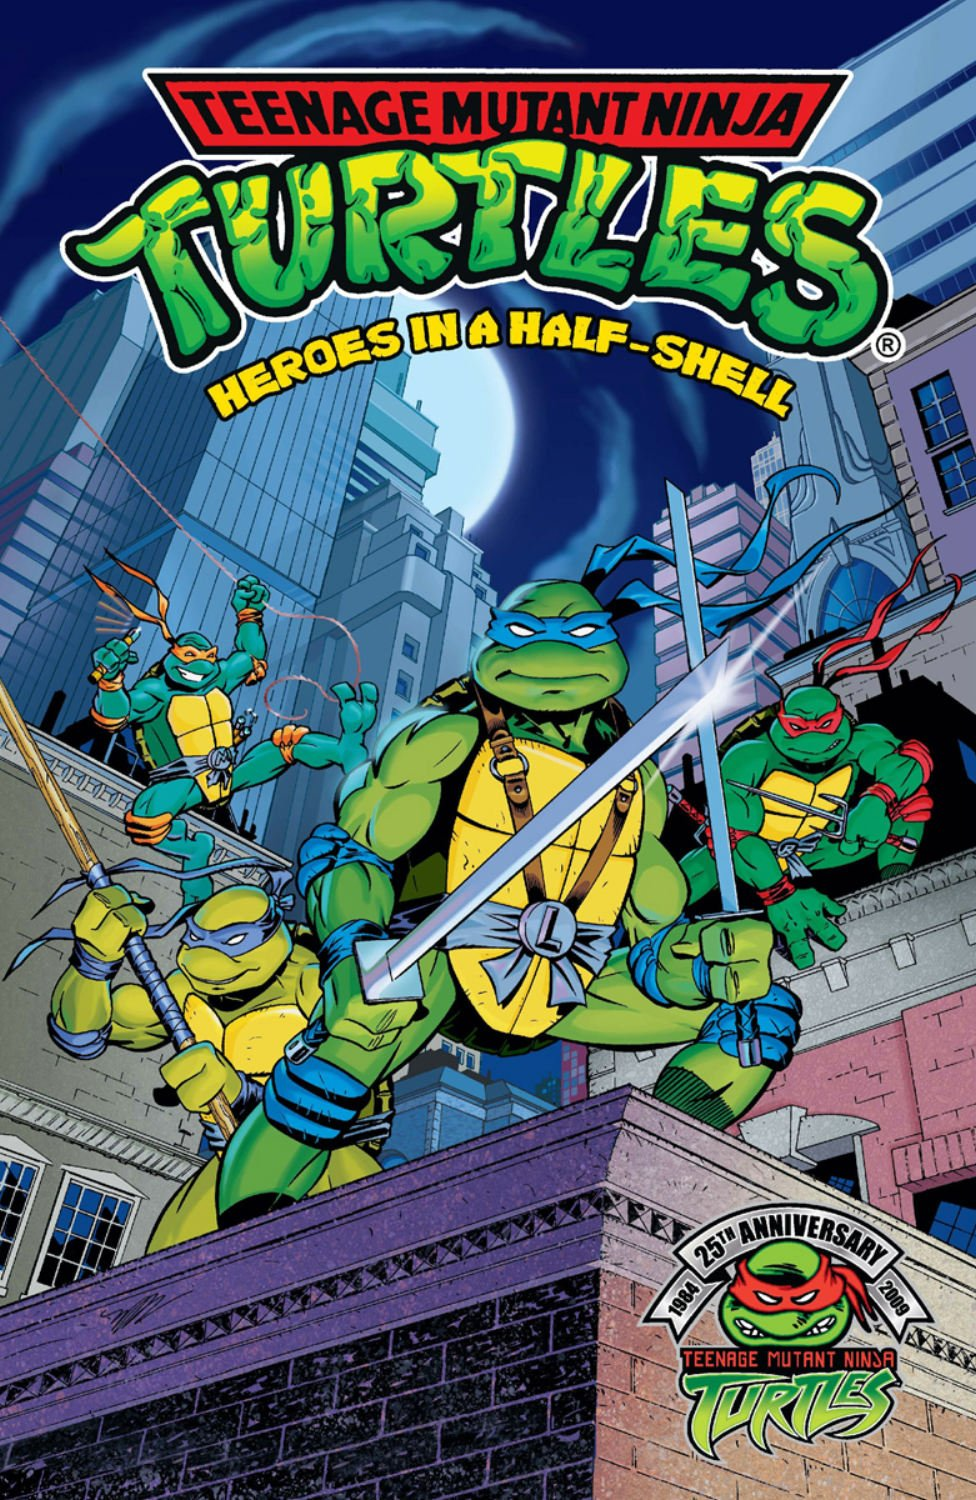 The Teenage Mutant Ninja Turtles #1: Heroes in a Half Shell ...